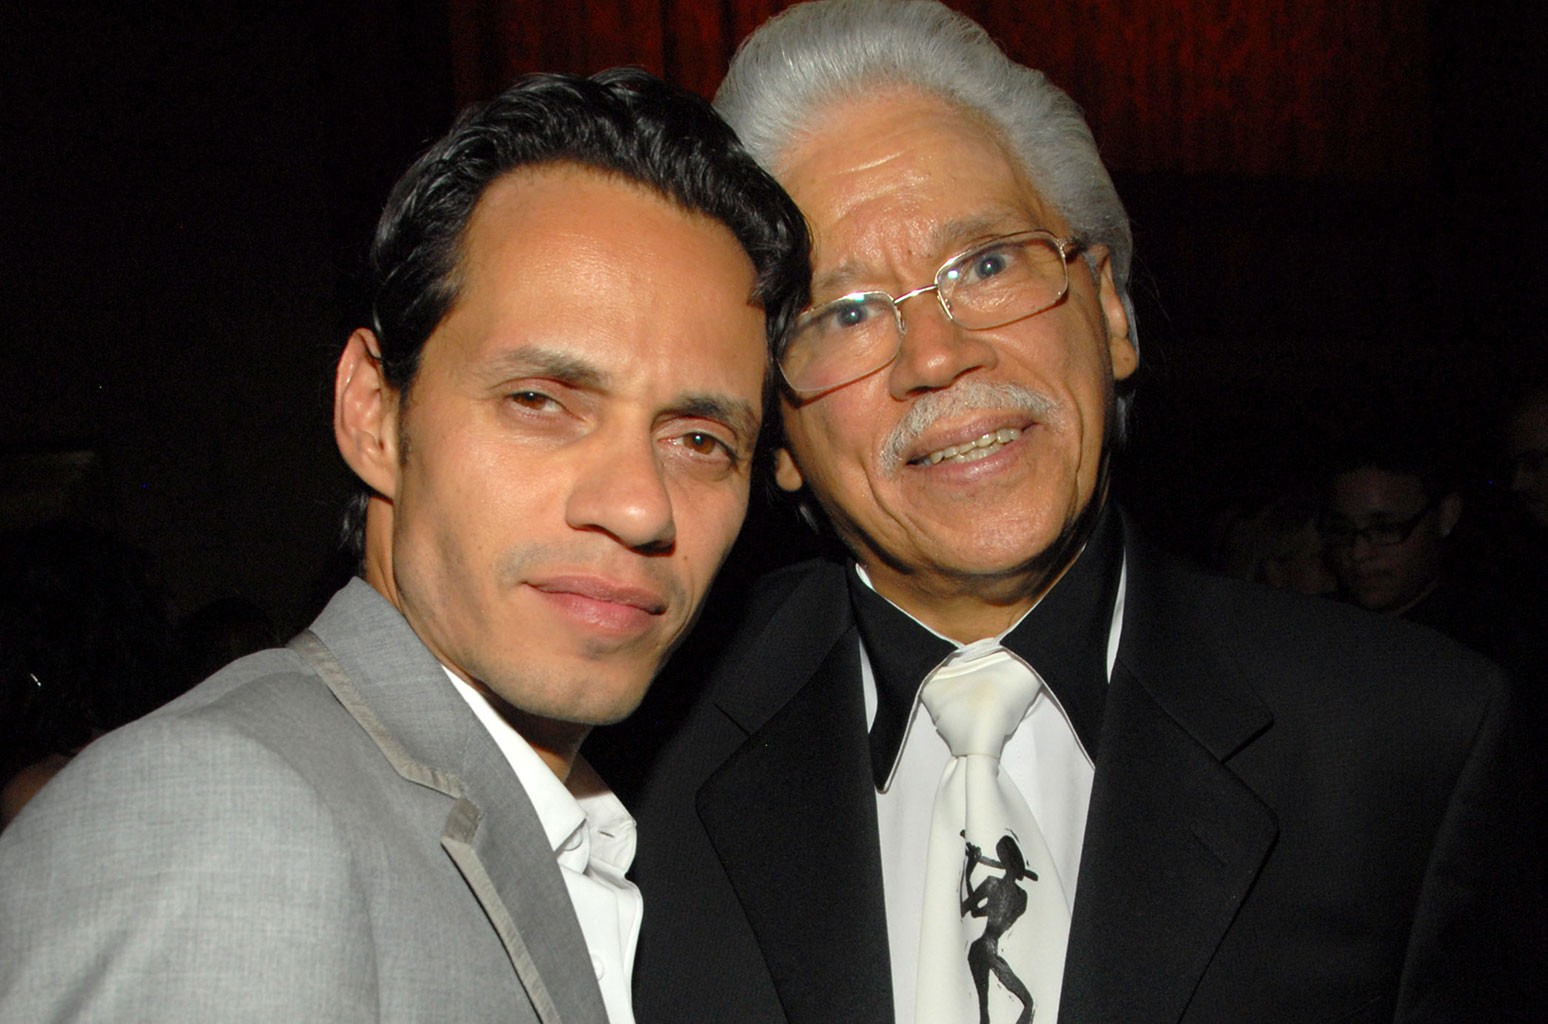 Marc Anthony, Milly Quezada, Rubén Blades & More Remember Johnny Pacheco